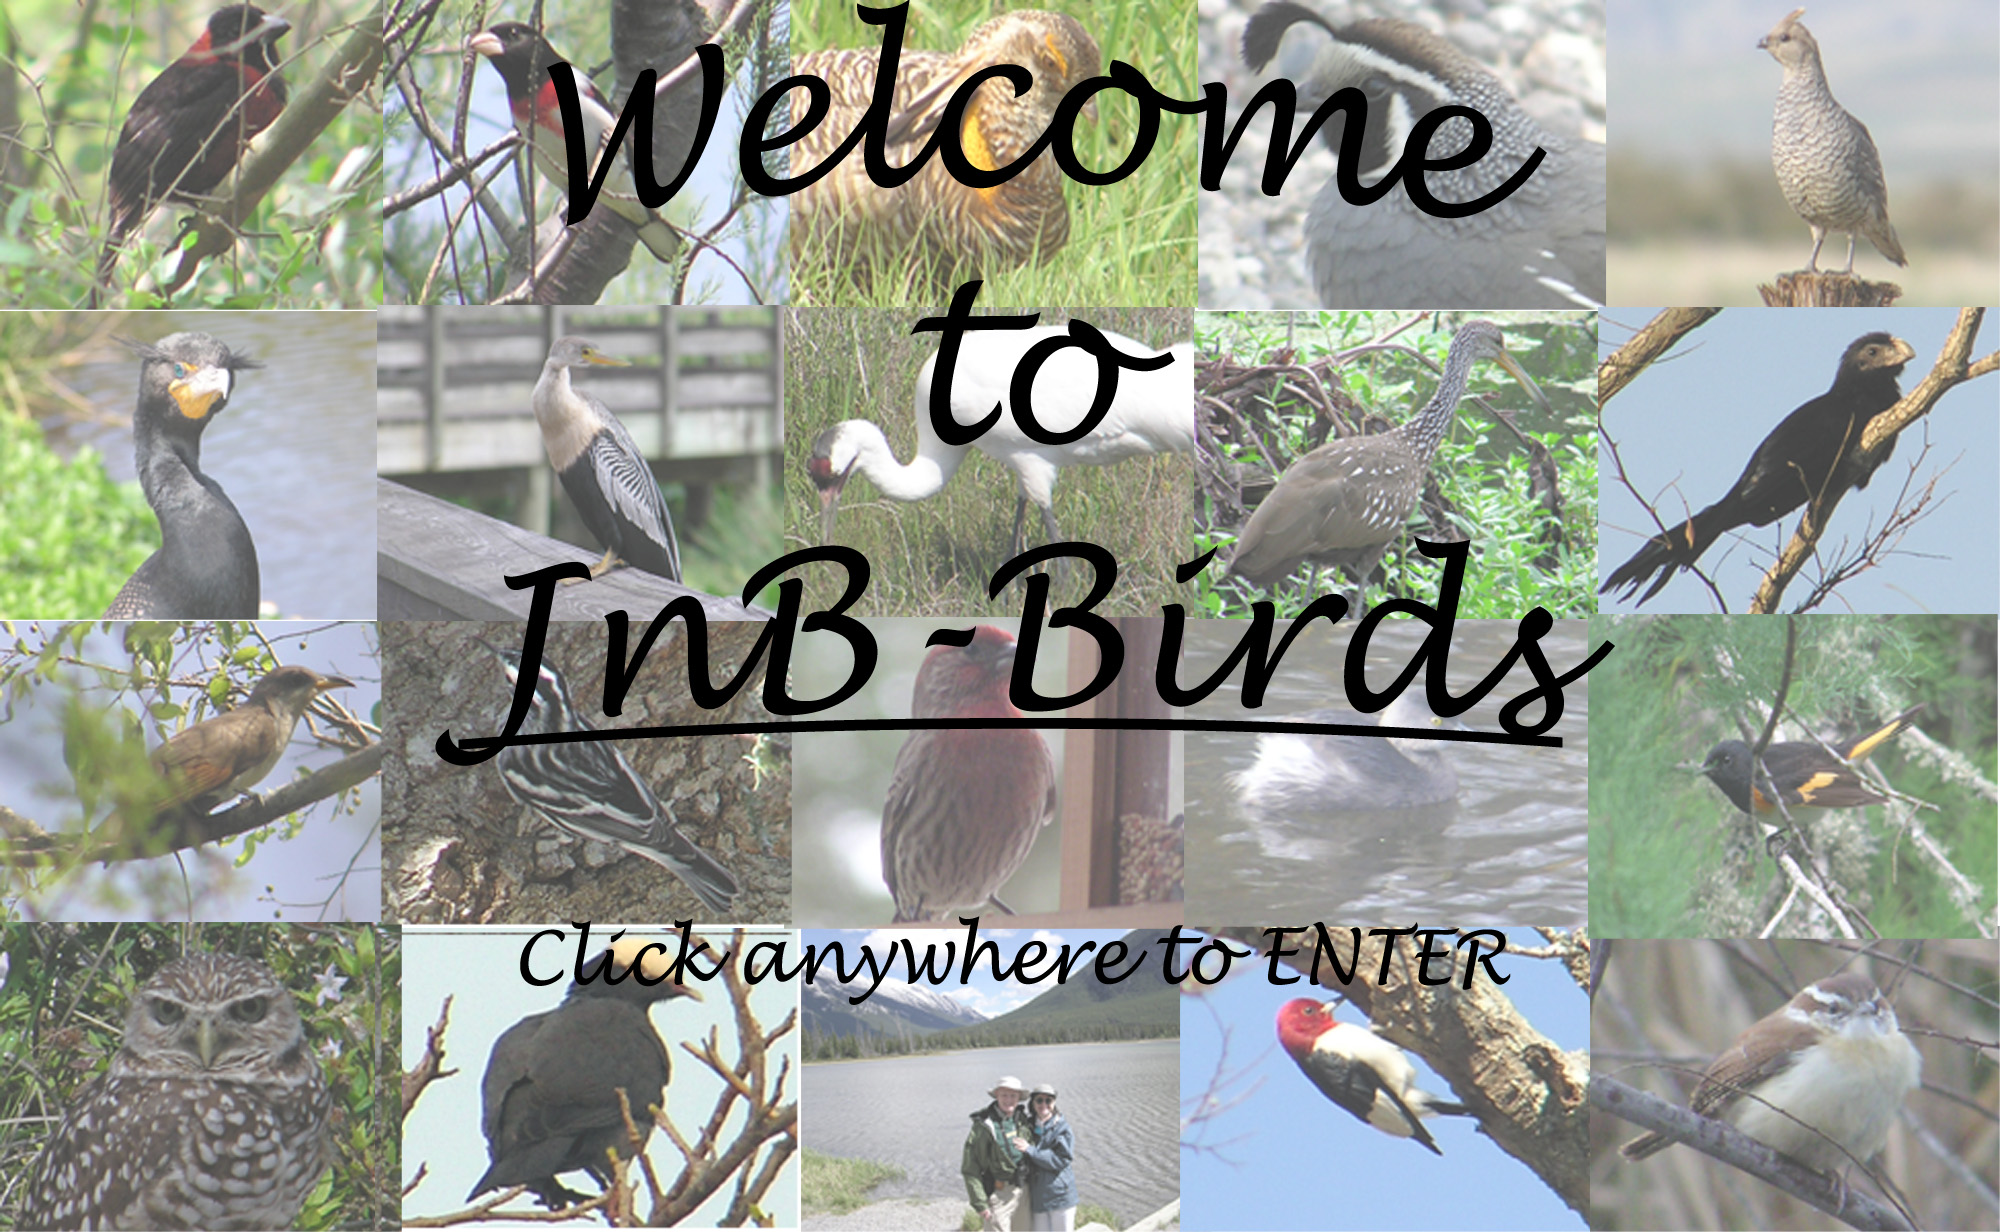 Click anywhere in the picture to ENTER Jnb-Birds.